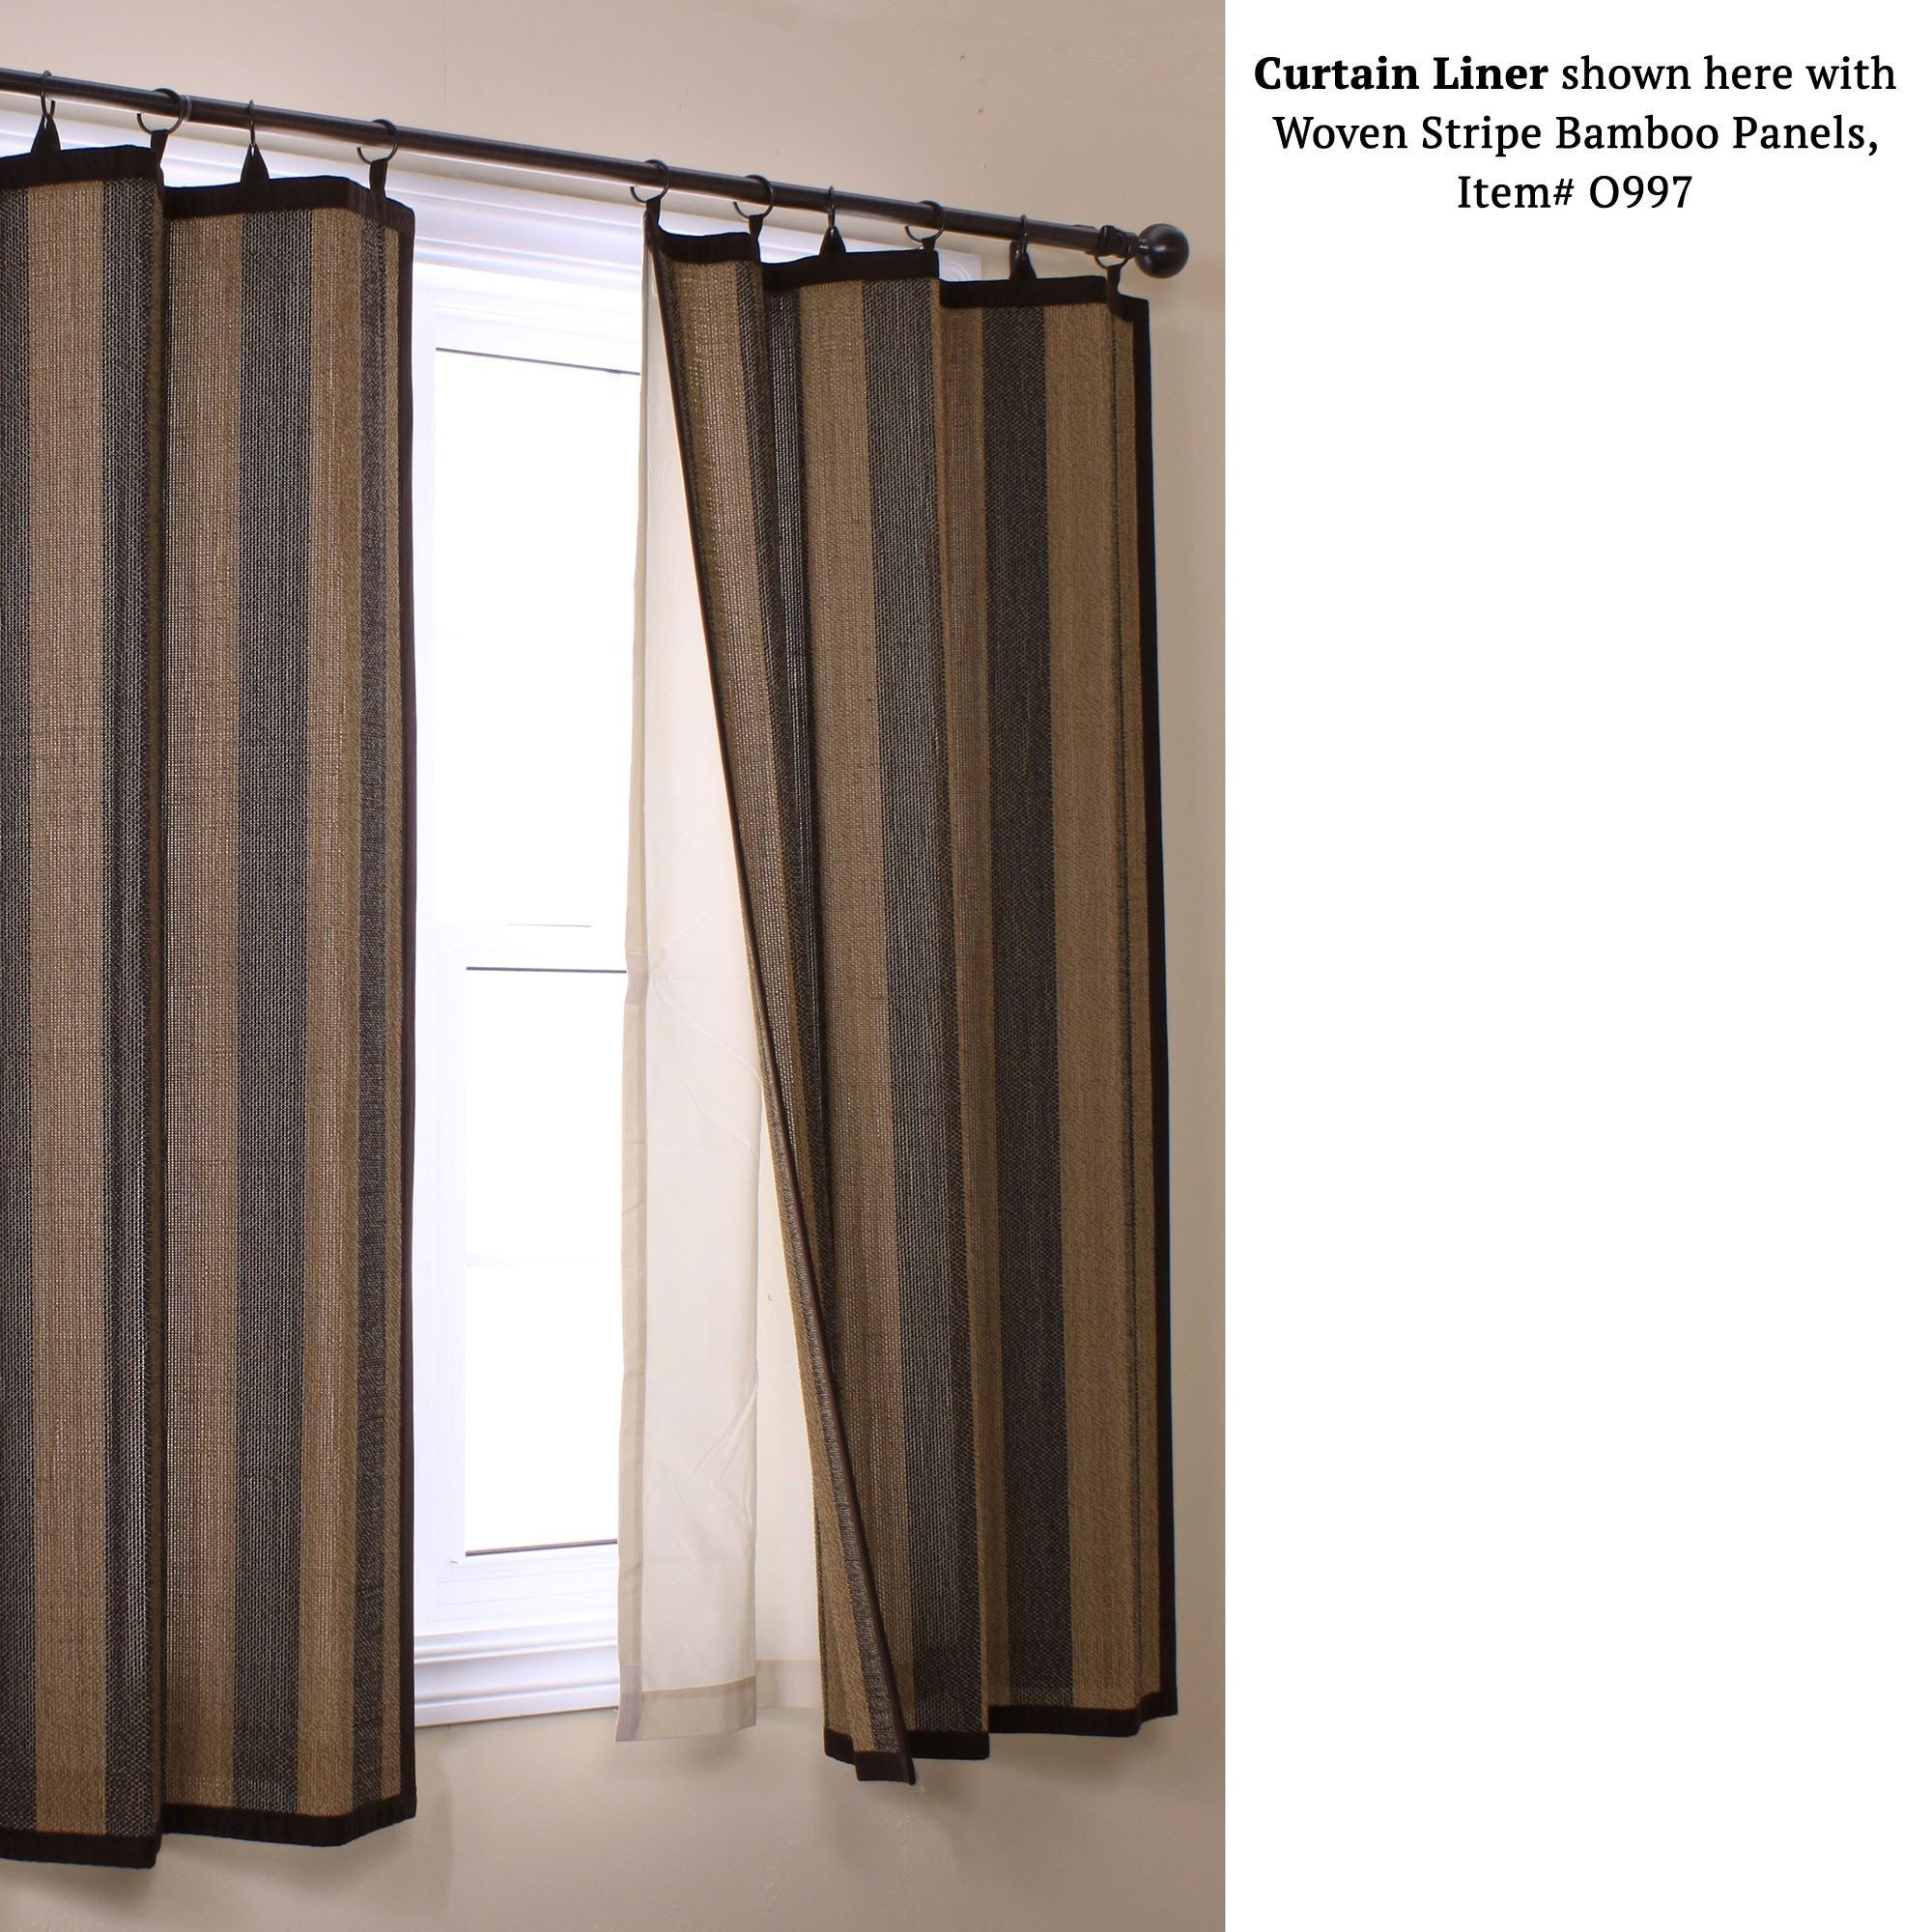 Insulating Blackout Curtain Panel Liner With Regard To Curtains With Blackout Lining (Image 8 of 15)